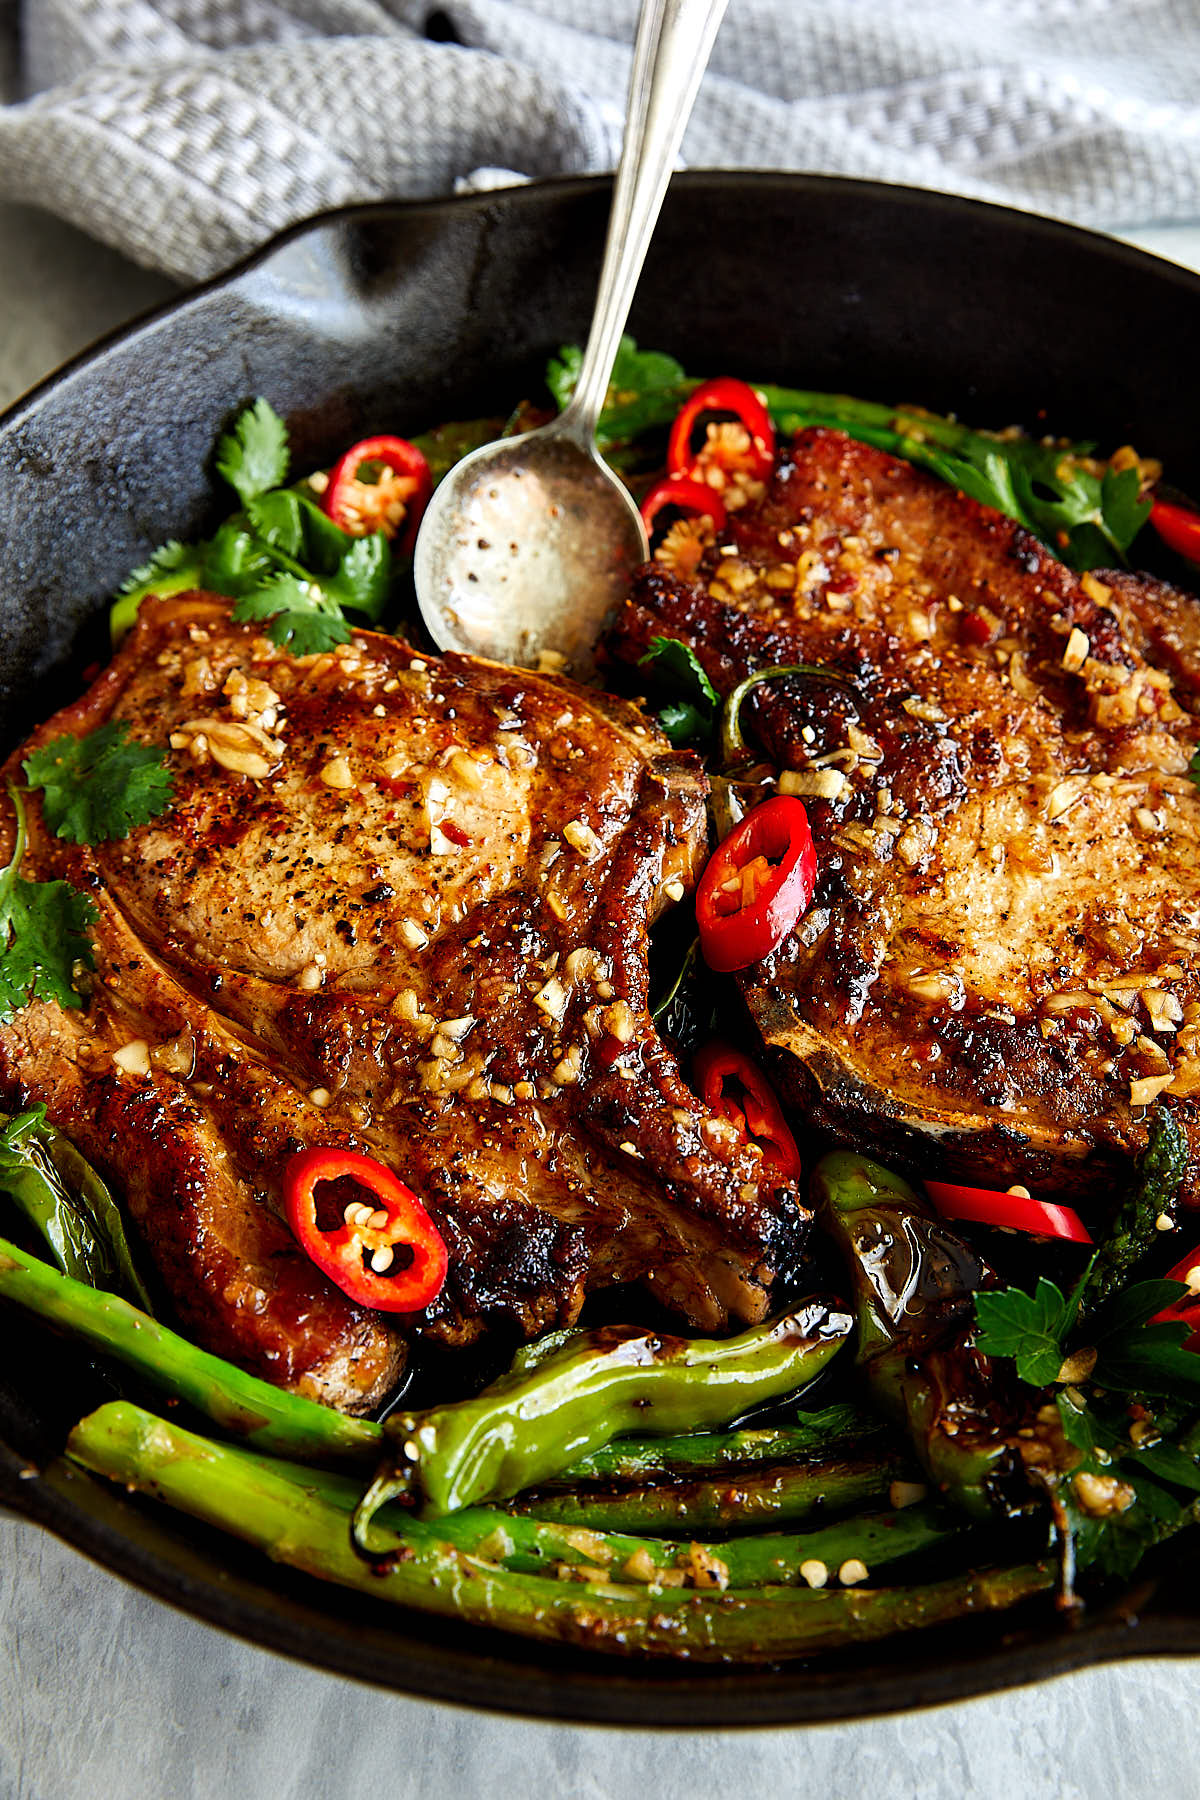 Pan-Fried Pork Chops with Maple Lime Vinaigrette | ifoodblogger.com #pork #porkchops #porkchop #porkchoprecipes #quickdinnerrecipes #easyrecipes